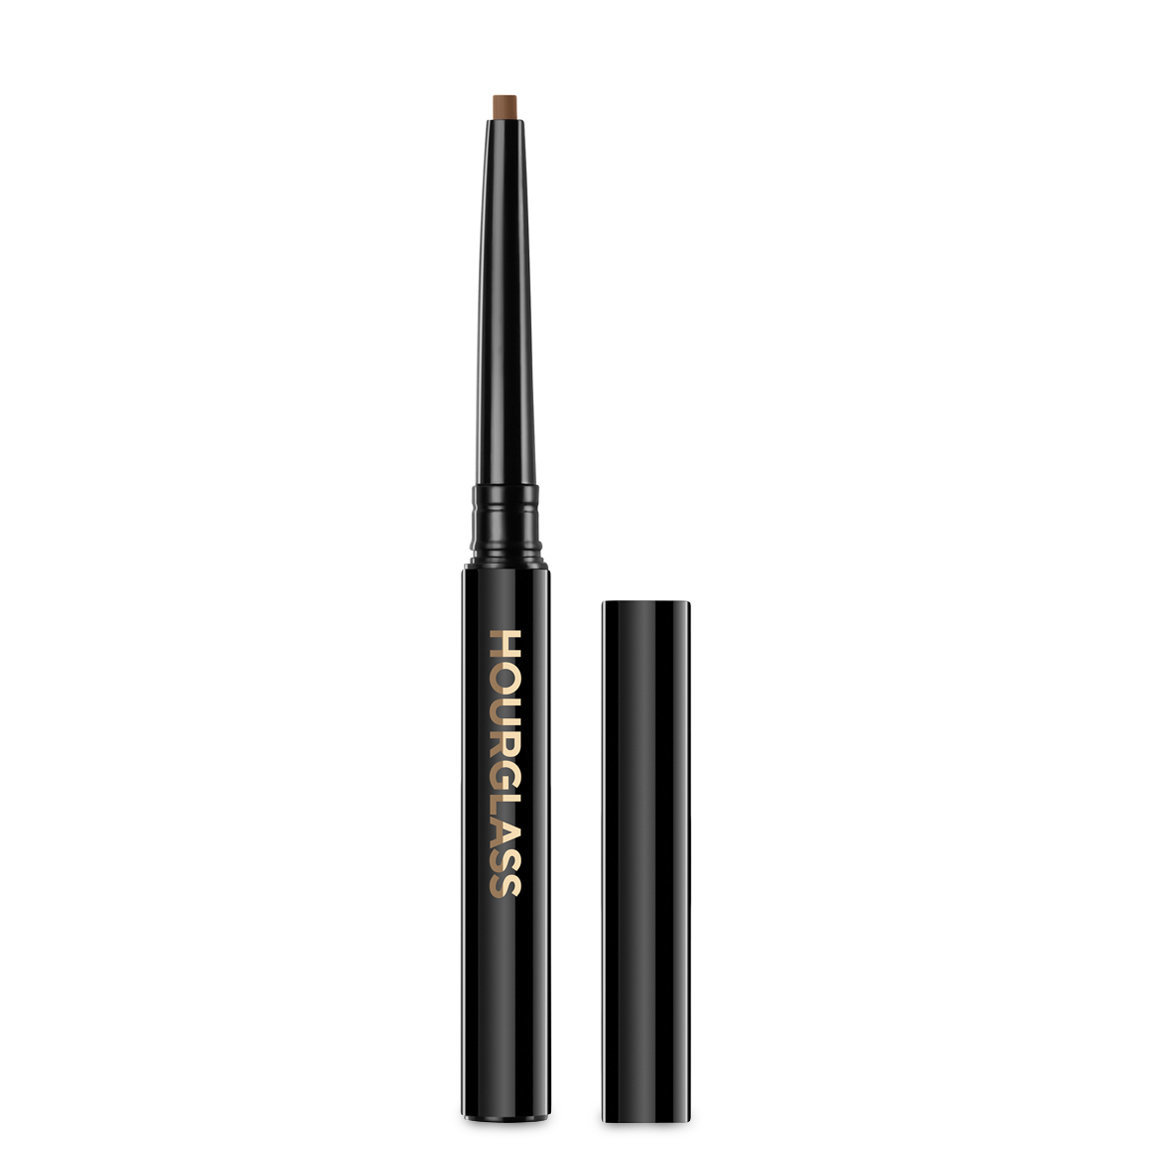 Hourglass Arch Brow Micro Sculpting Pencil - Travel Size Blonde